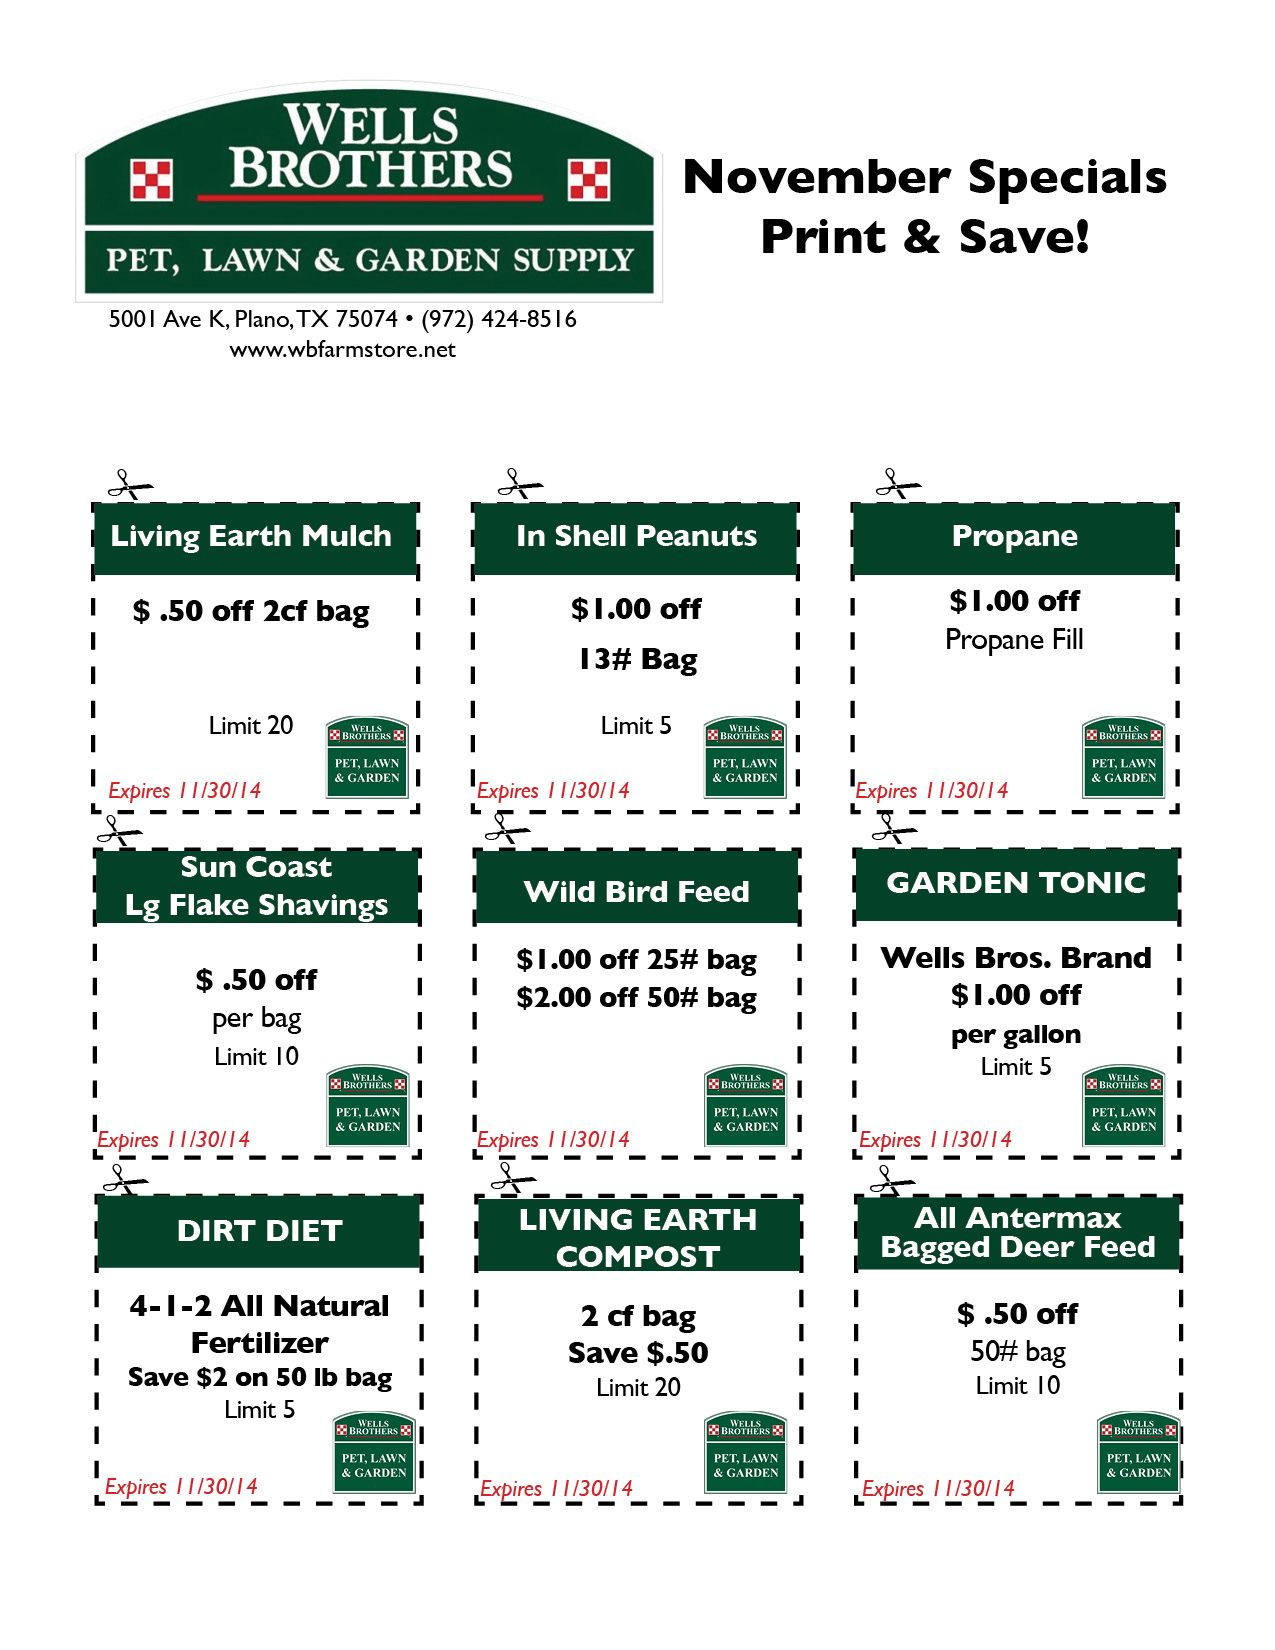 SAVE! Wells Brothers Farm Store November Coupons! Visit us